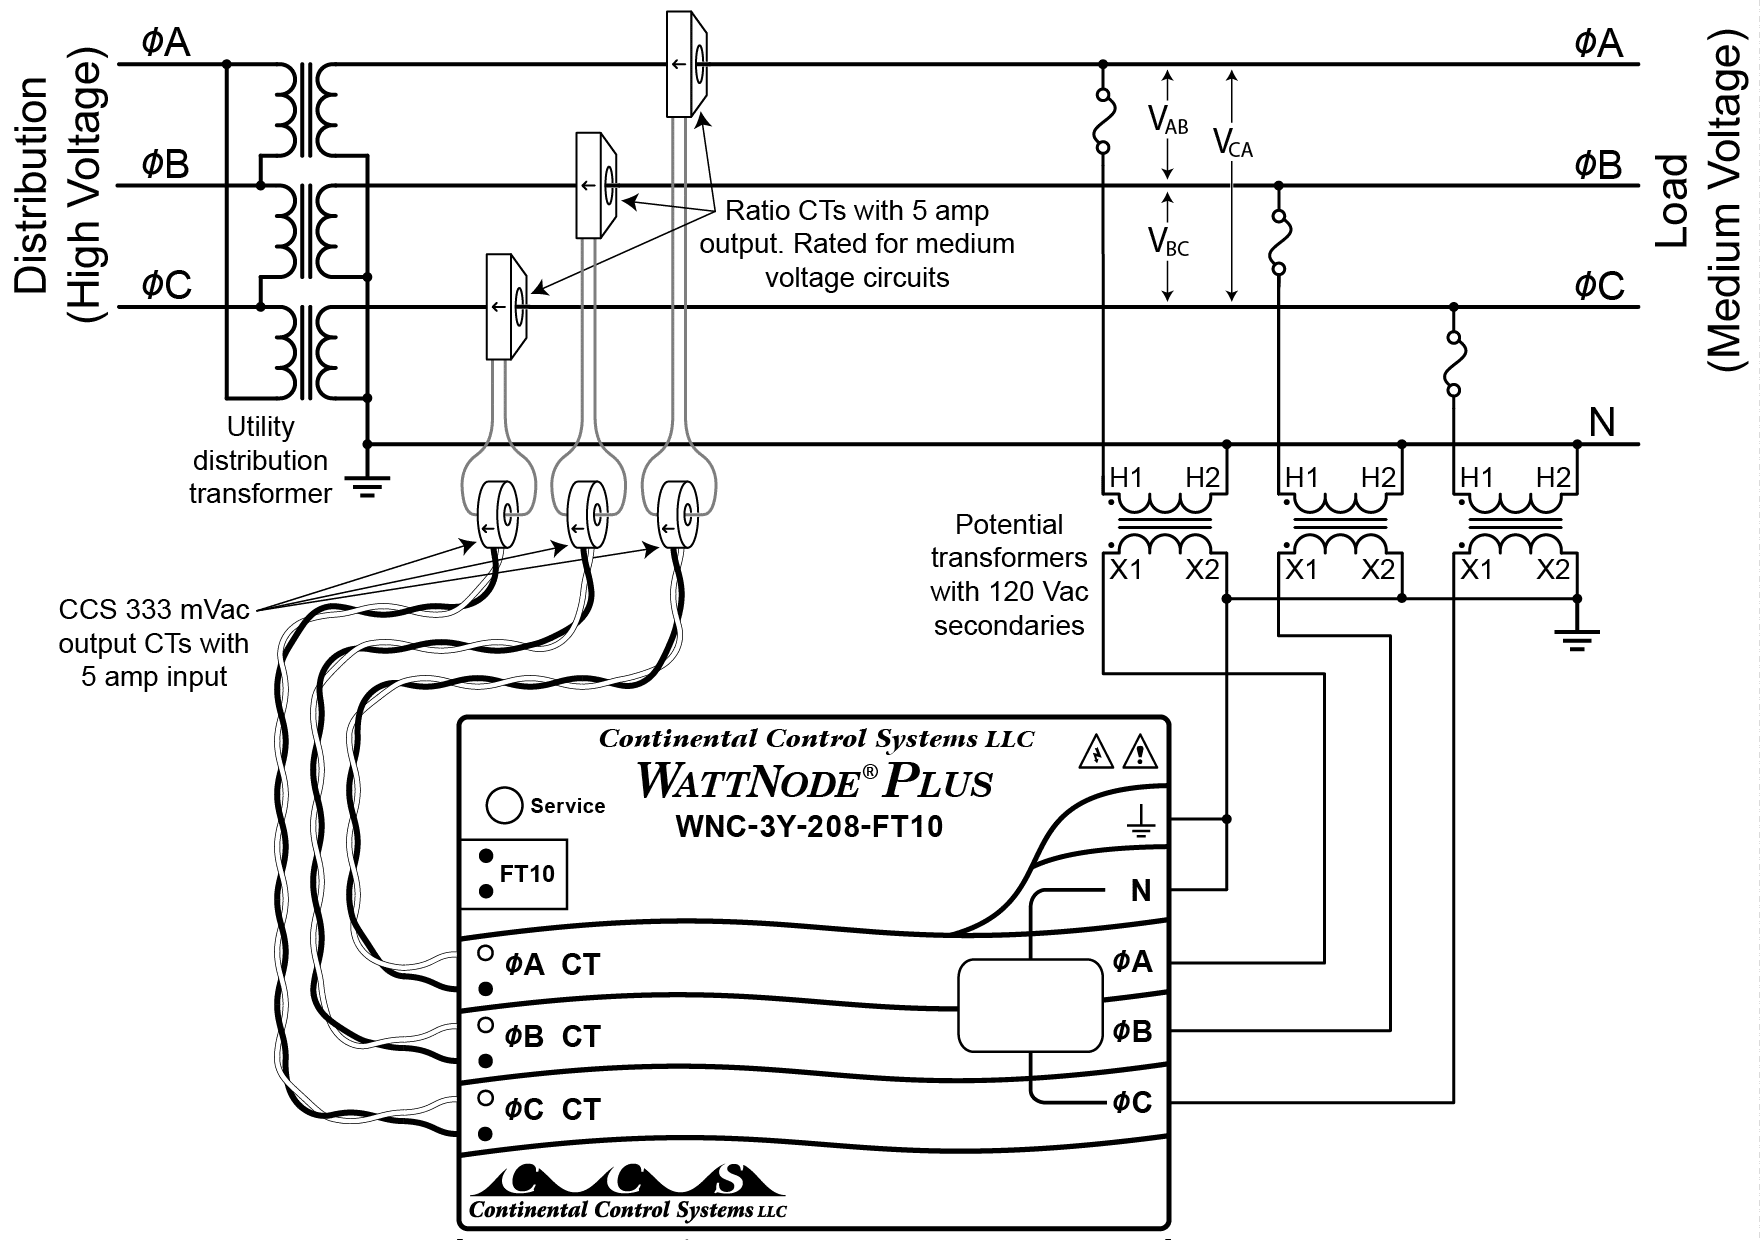 Evcon Furnace Wiring Diagram Control country with blue cross flag – Evcon Furnace Wiring Schematic